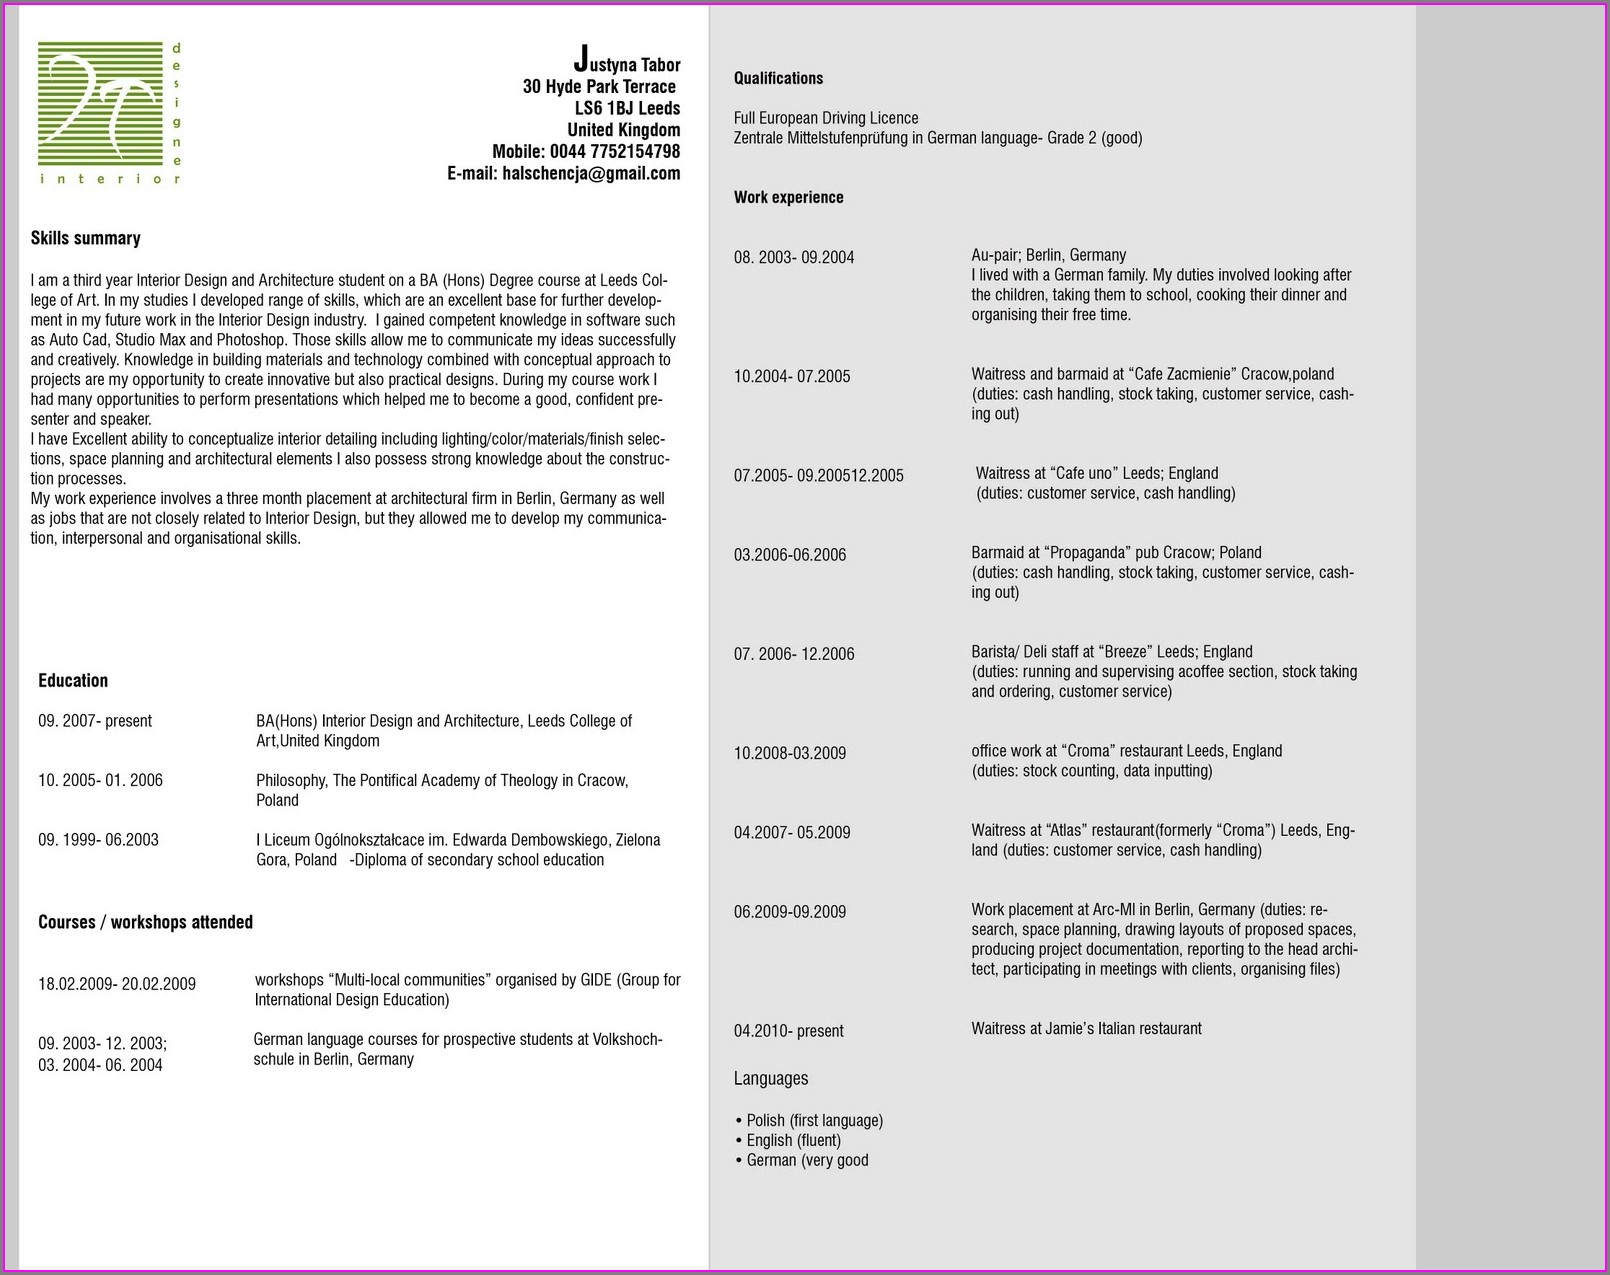 Professional Curriculum Vitae Format Free Download